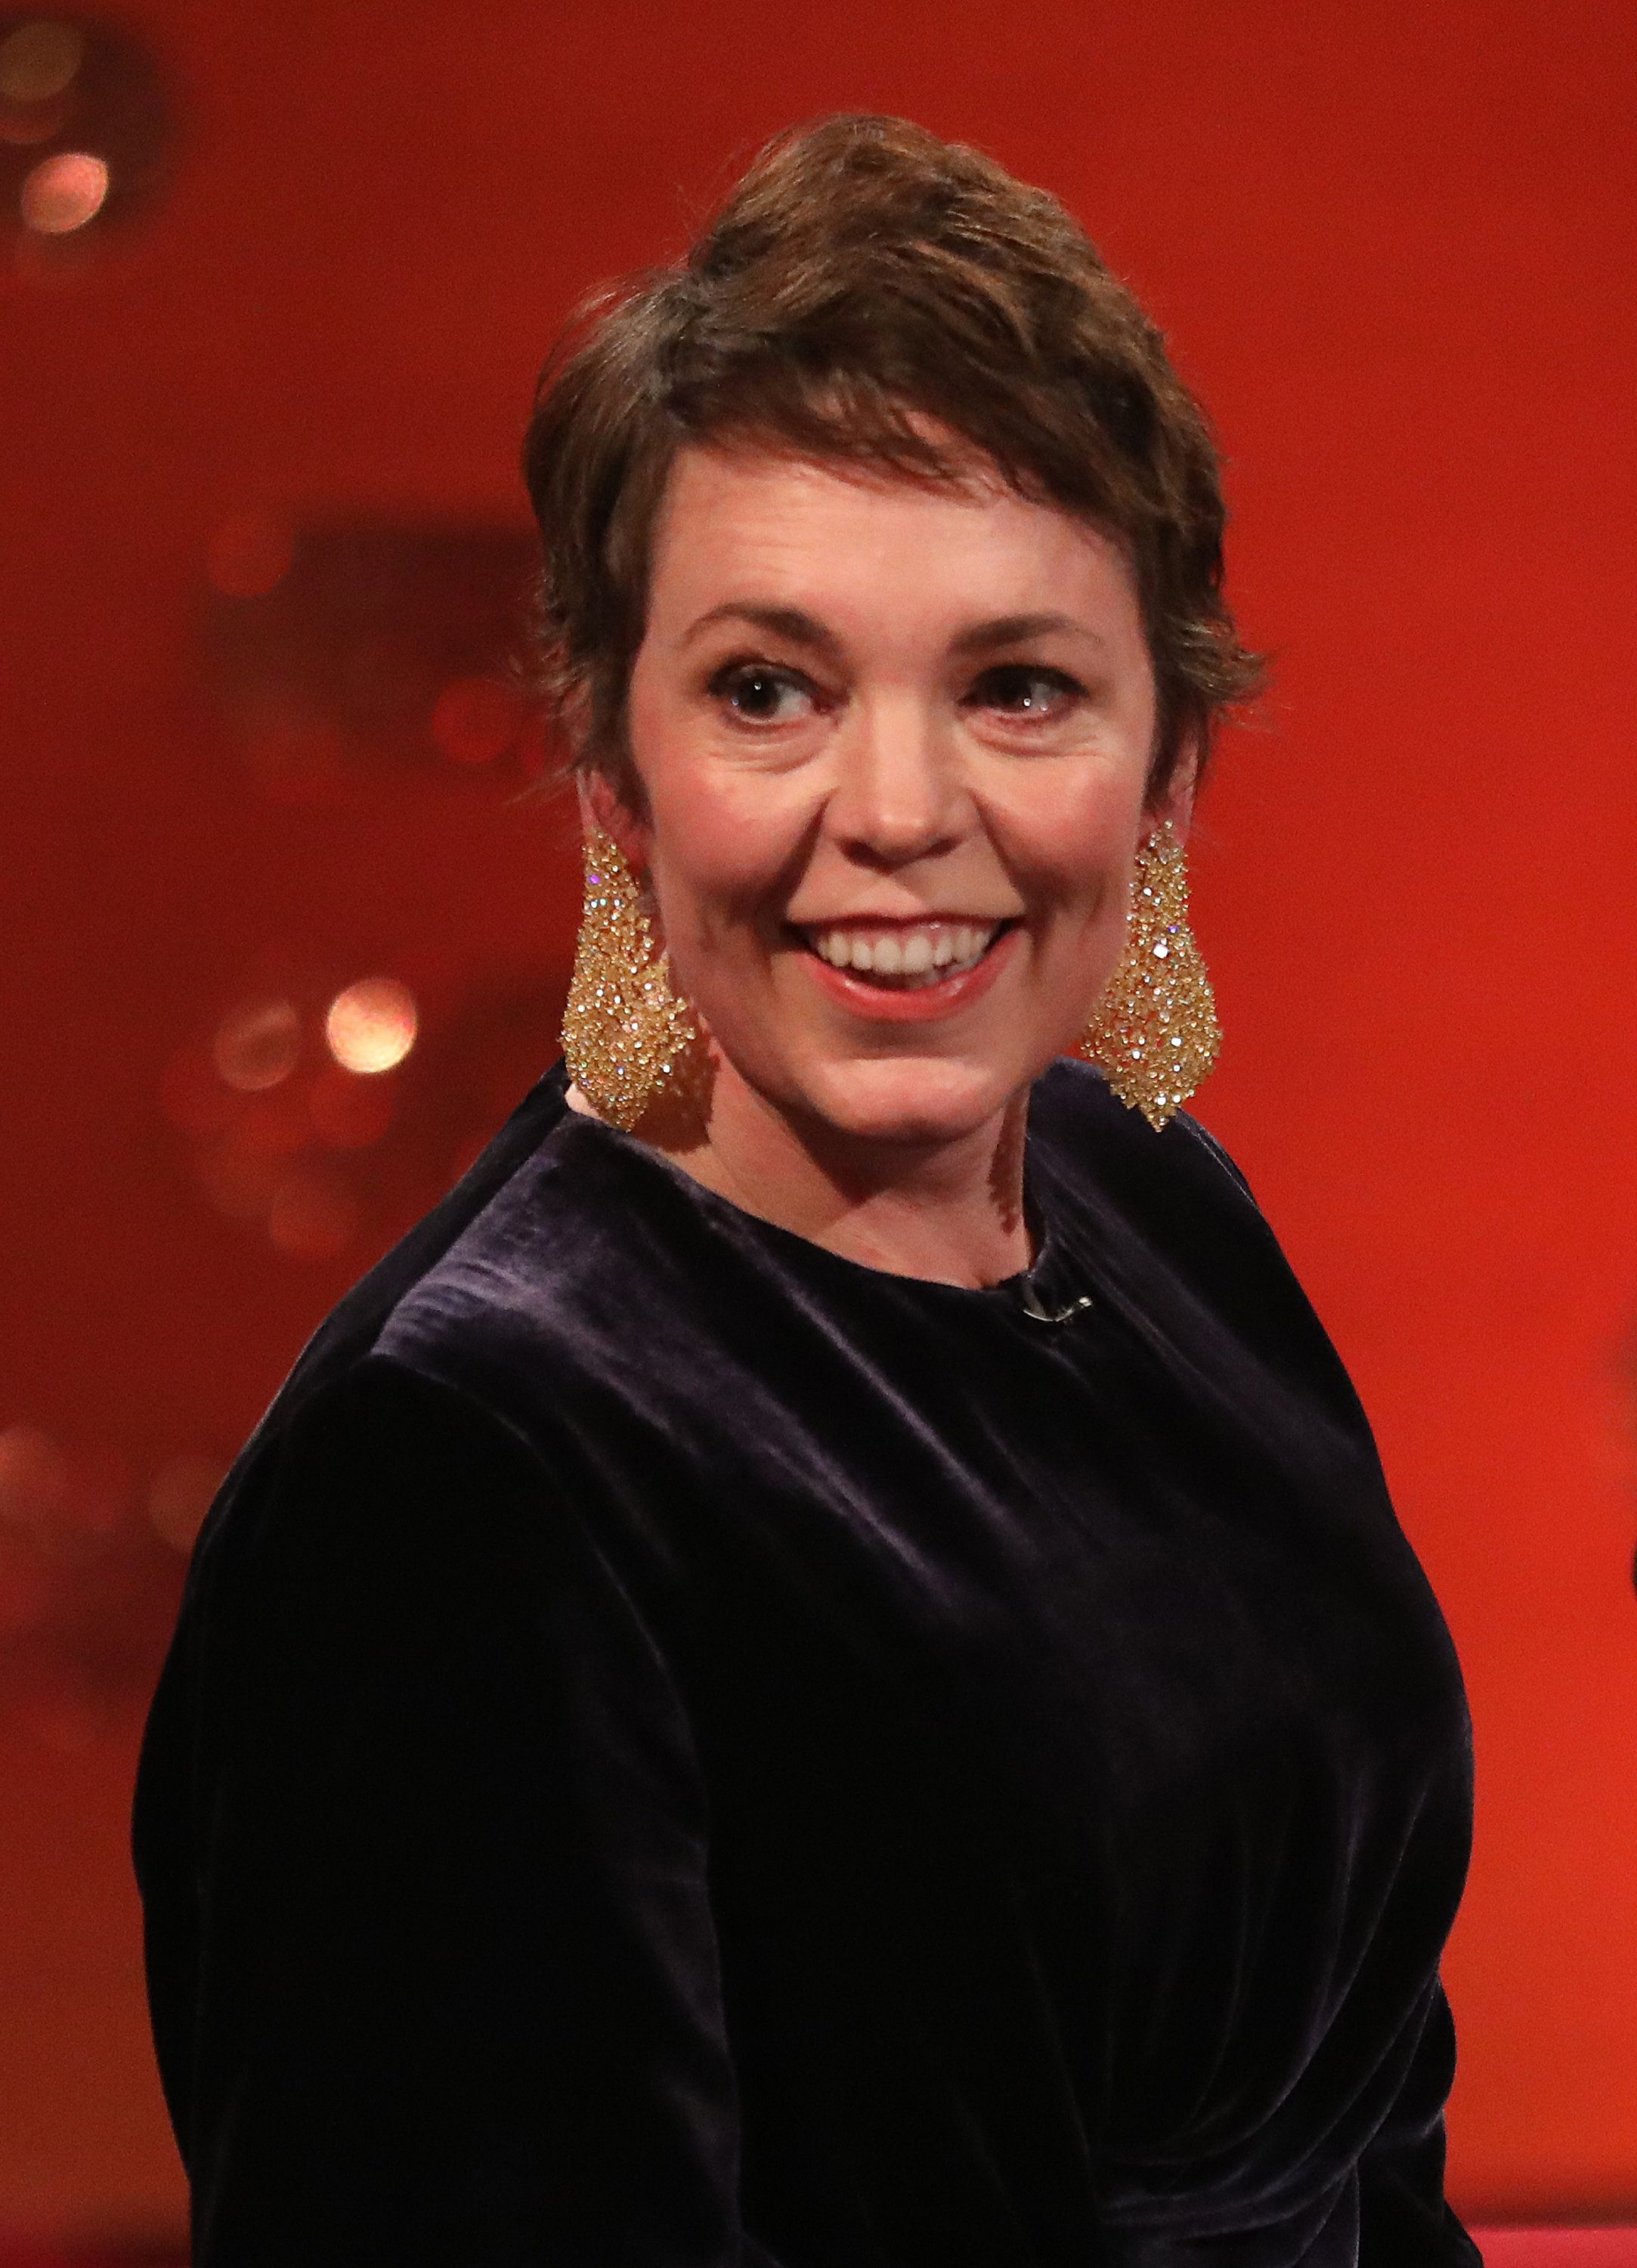 Olivia Colman Reveals The Hilarious Prank She Pulled On Emma Stone During 'The Favourite' Sex